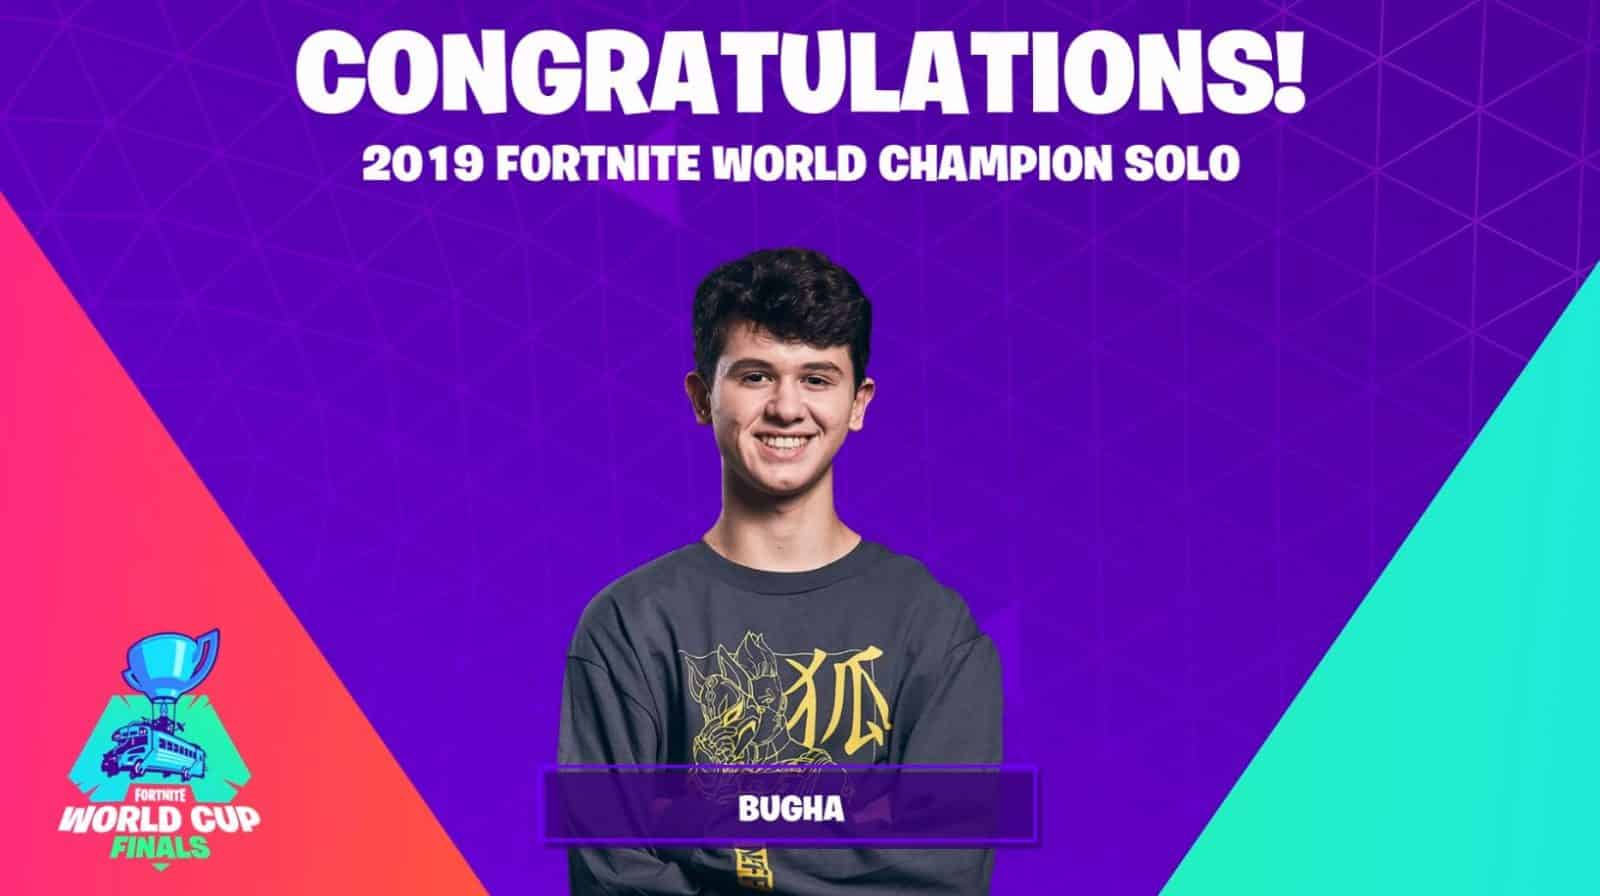 2019 Fortnite World Champion Solo Bugha